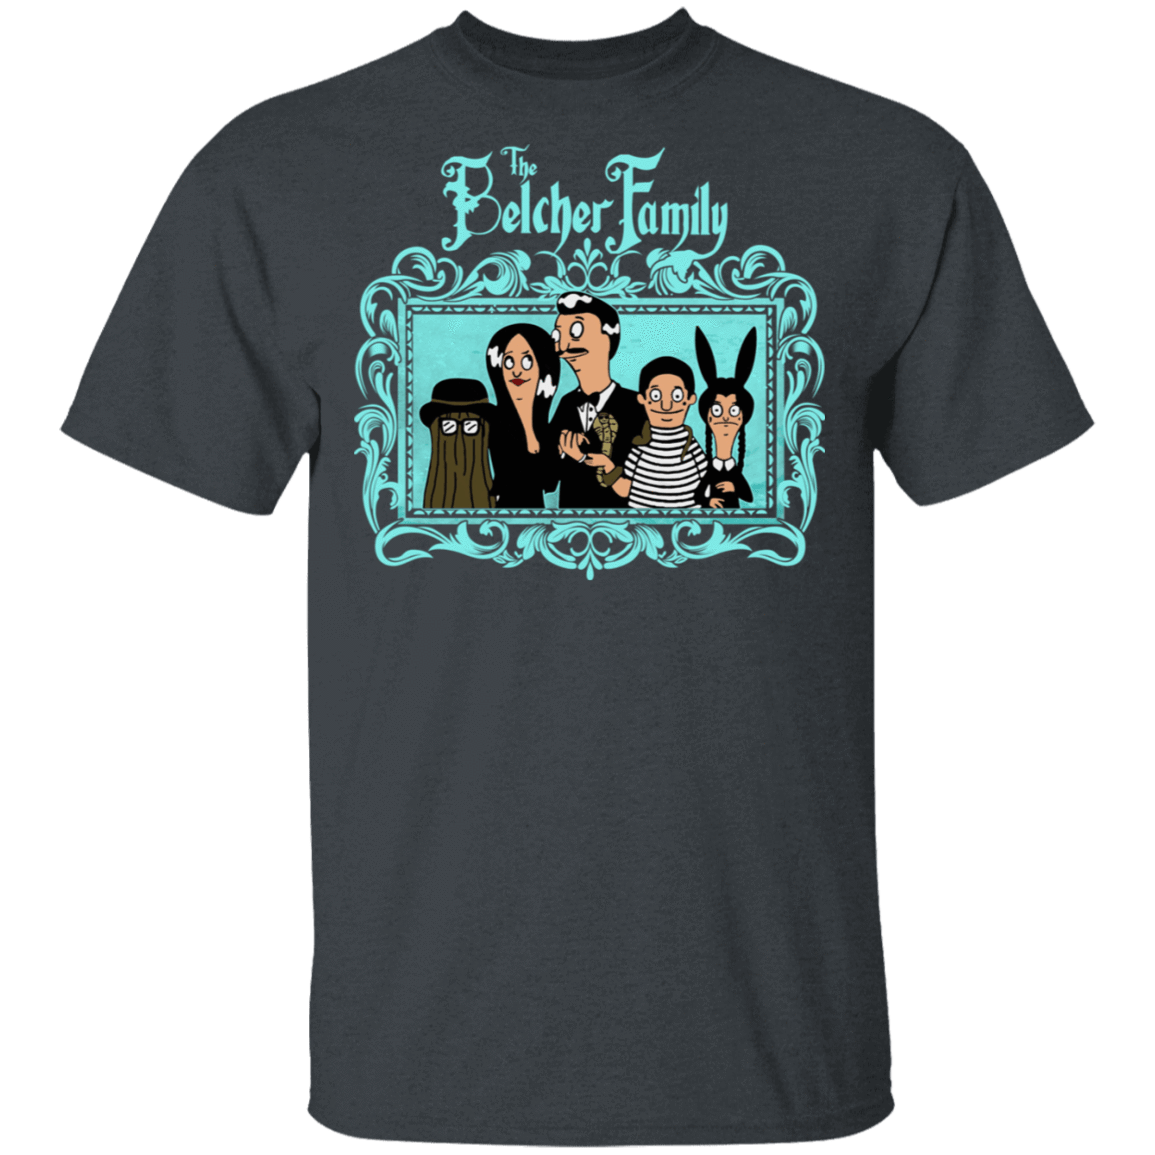 The Belcher Family Bob's Burgers T-Shirts, Hoodies, Tank 1049-9957-81138119-48192 - Tee Ript